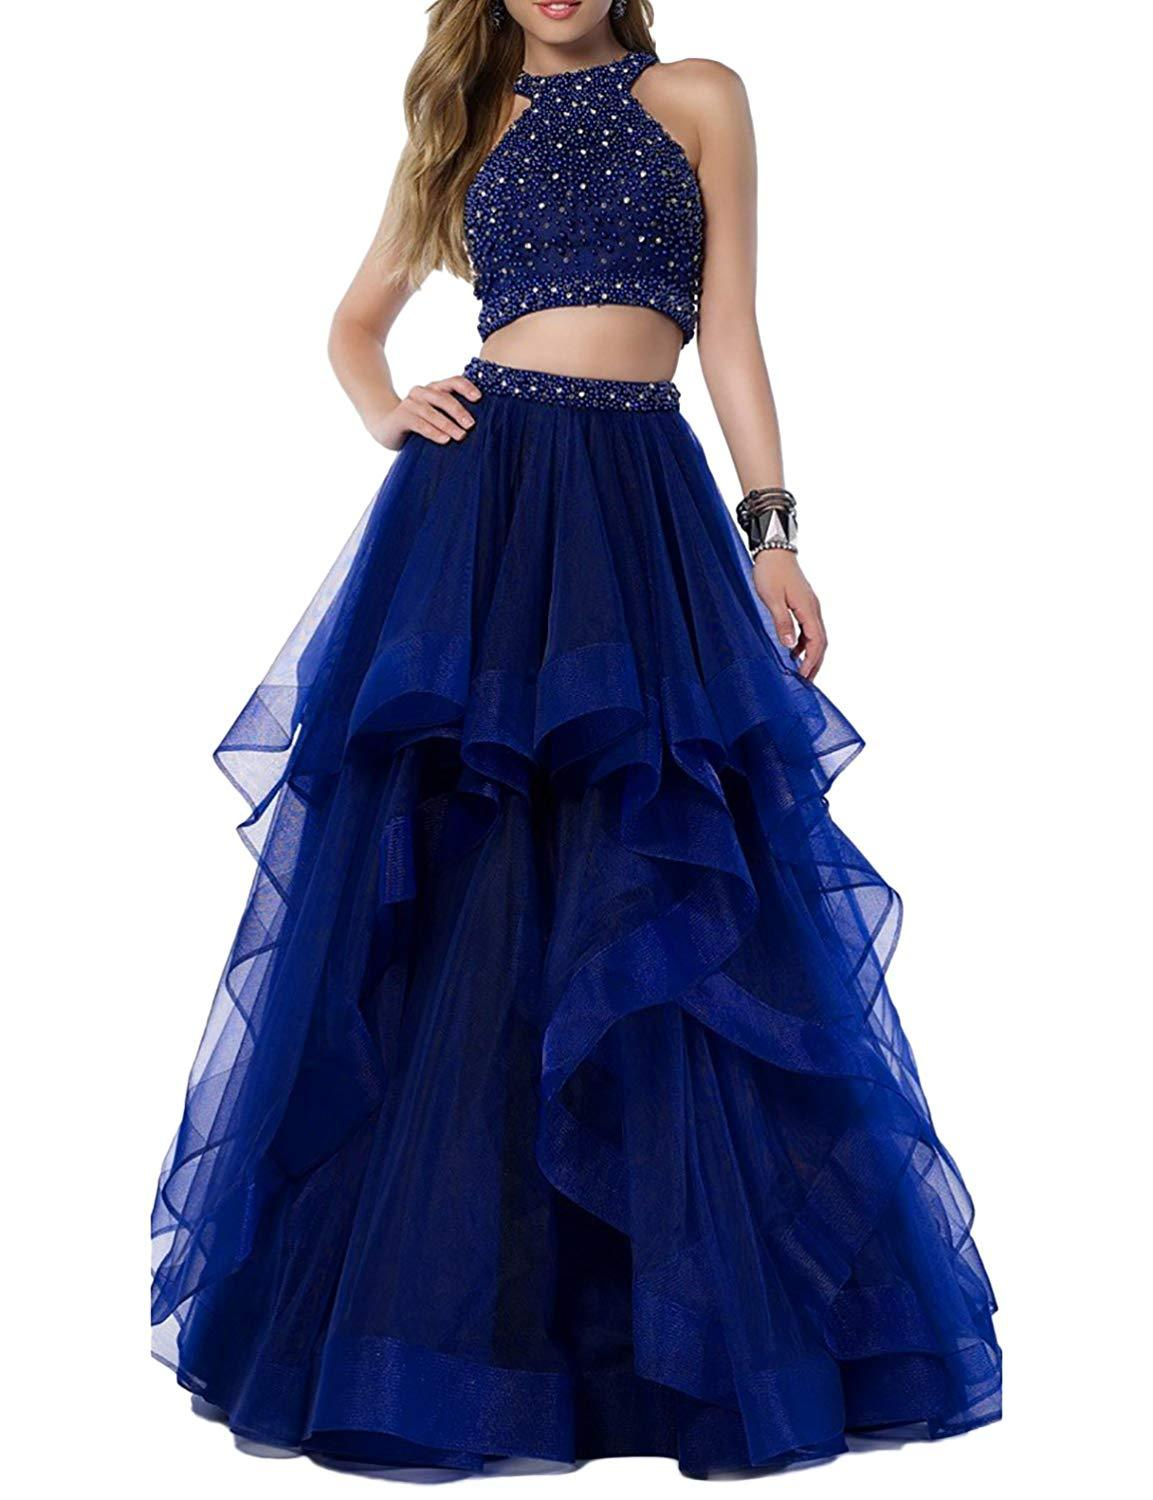 Women Two Piece Beaded Prom Dress Long Homecoming Party Dresses Skirt Ball Gowns